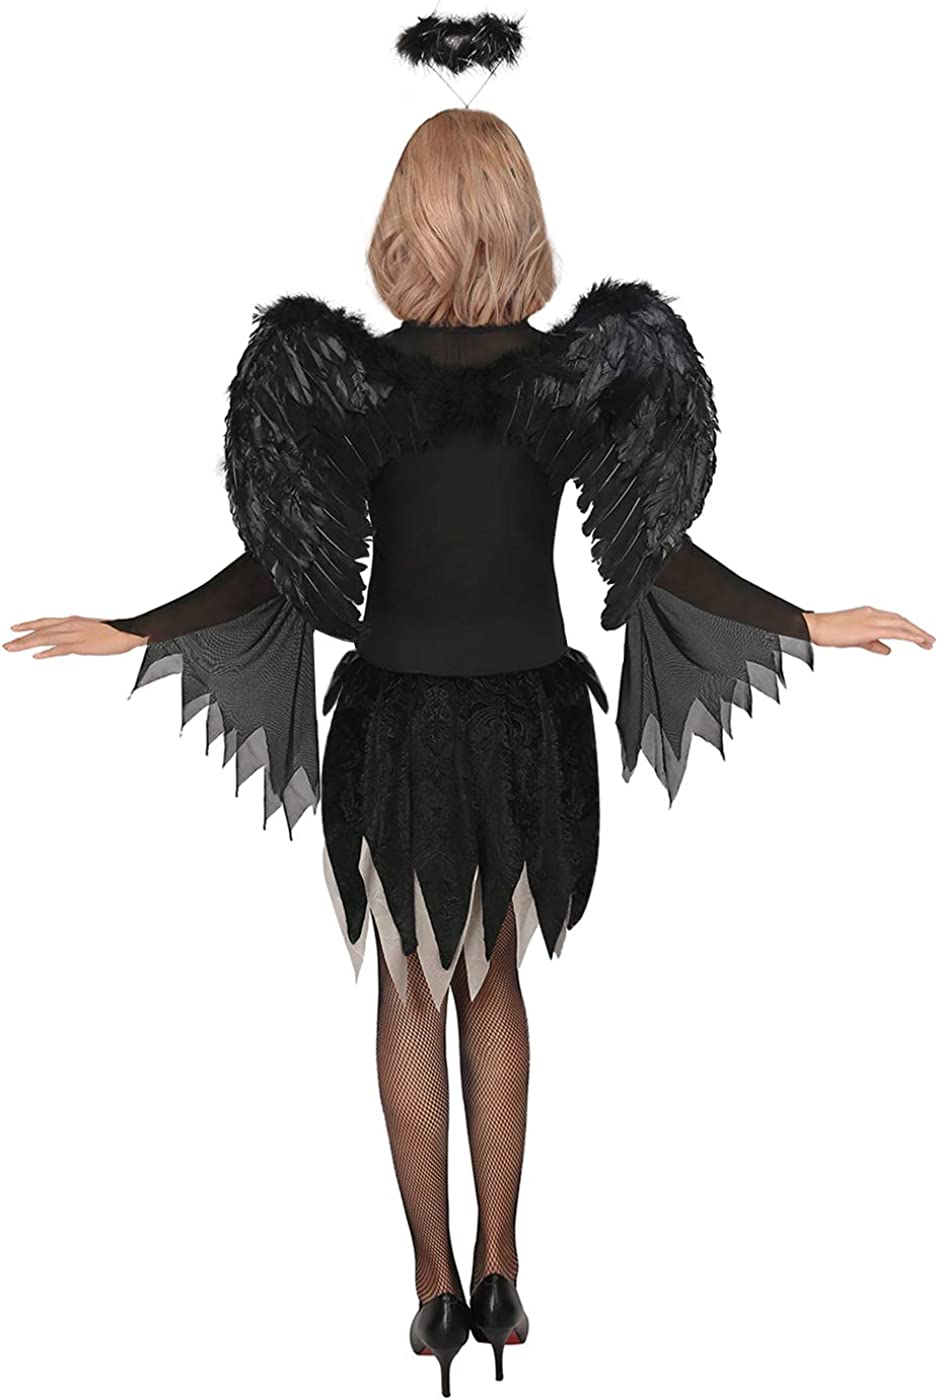 LADIES EVIL FAIRY COSTUME WITH WINGS HALLOWEEN FANCY DRESS BOOK MOVIE CHARACTER